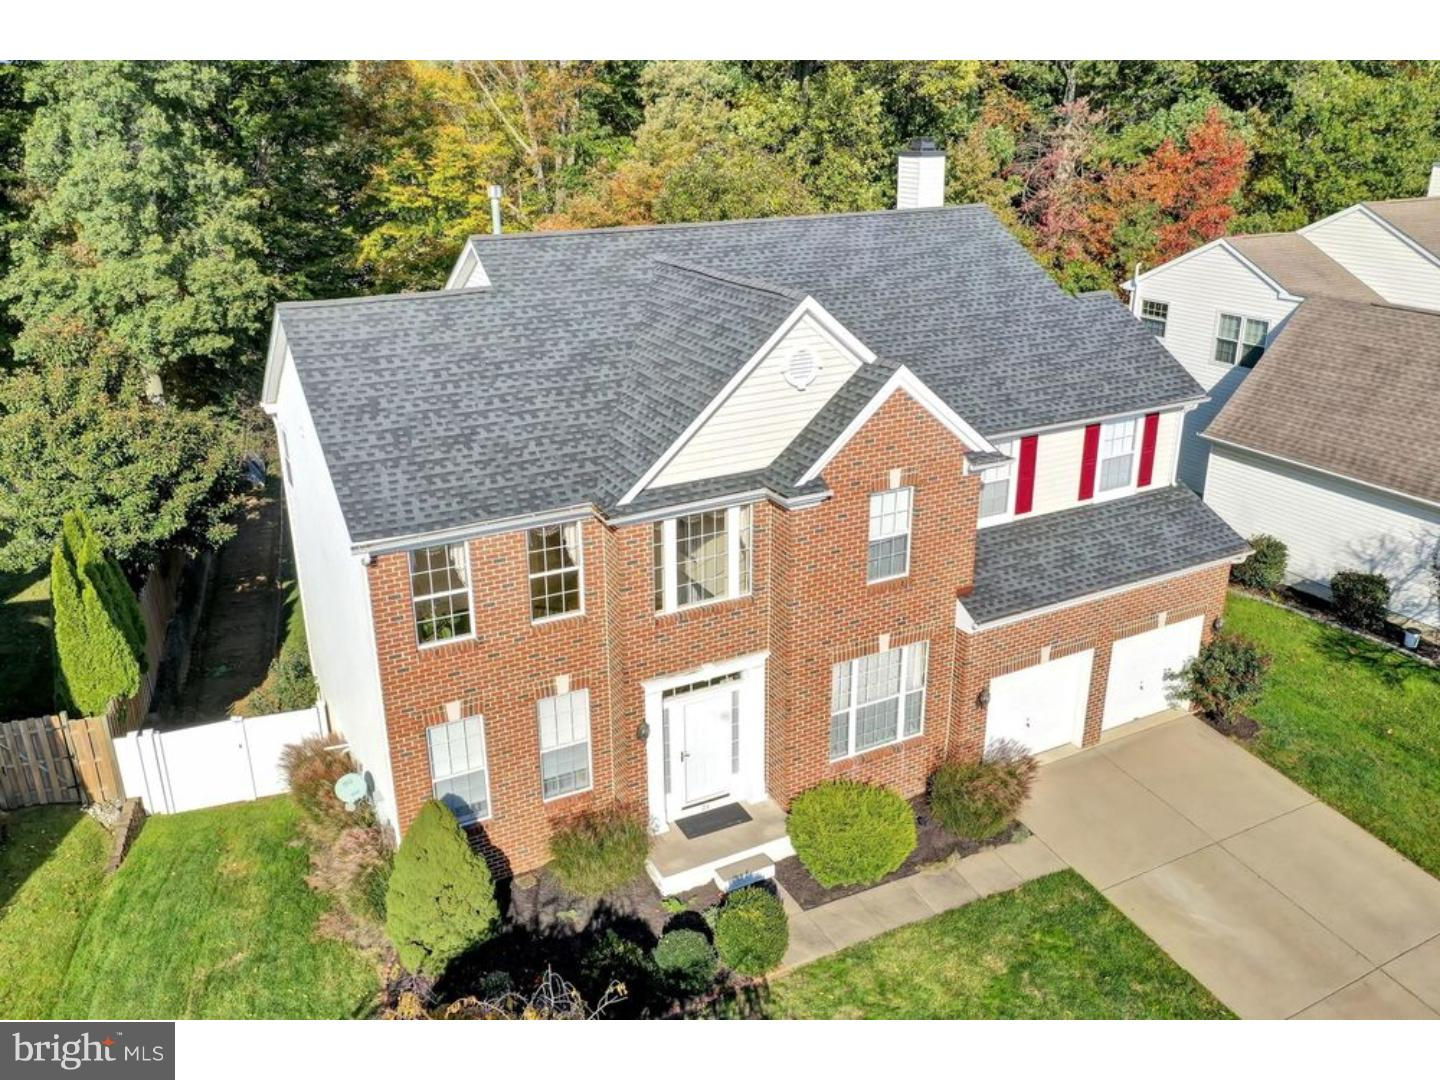 23 CREEKWOOD DRIVE, BORDENTOWN, NJ 08505